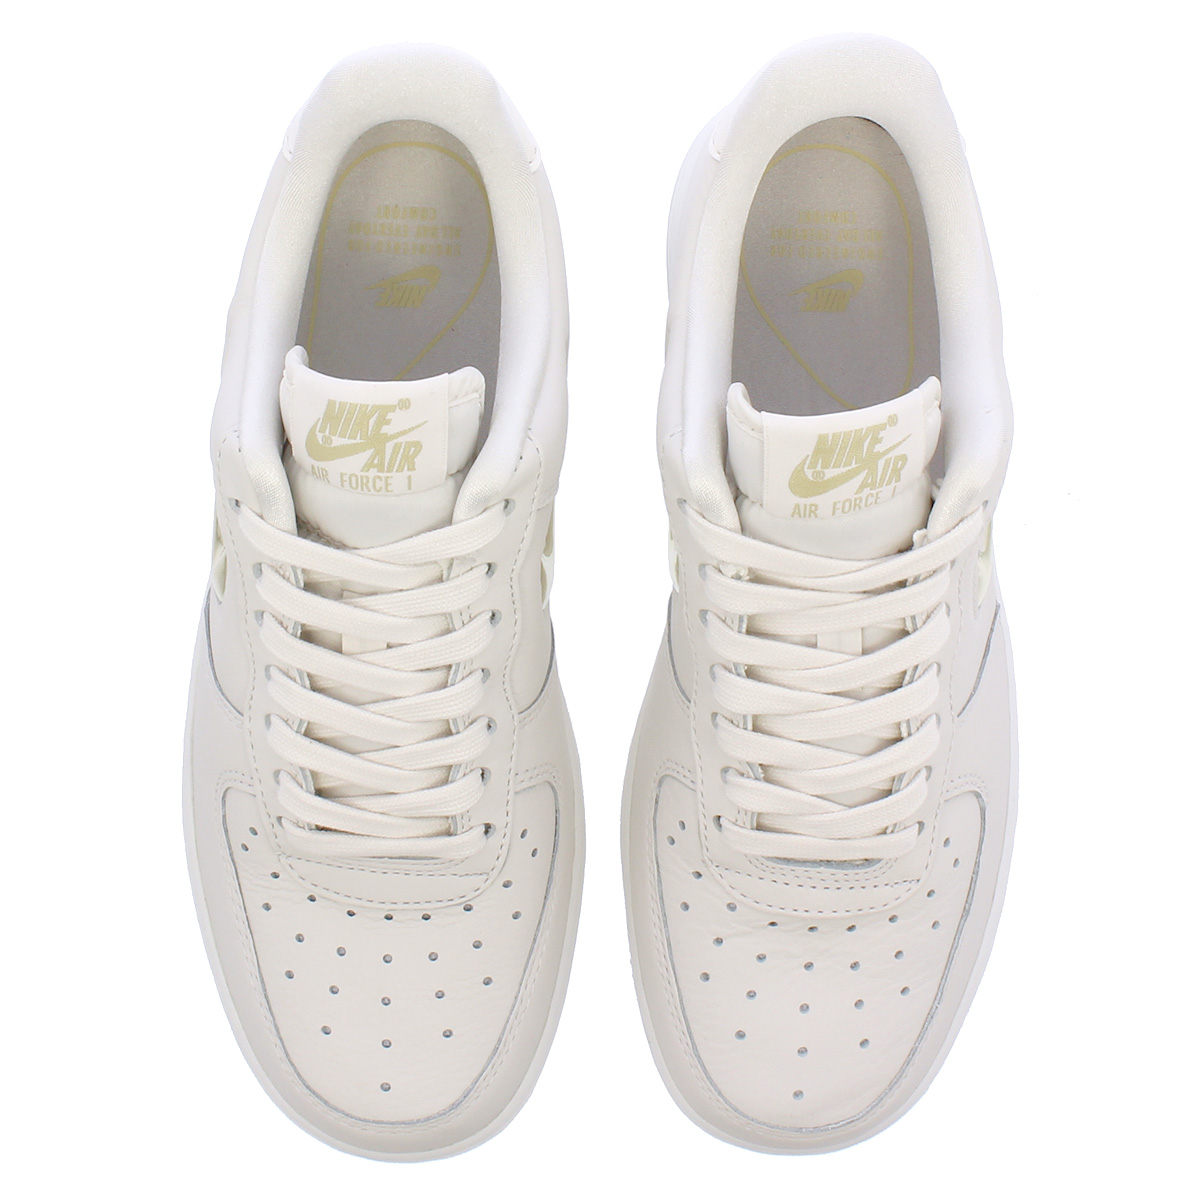 NIKE WMNS AIR FORCE 1 '07 PRM LX Nike women air force 1 07 premium LX PHANTOMGOLDWHITE ao3814 001